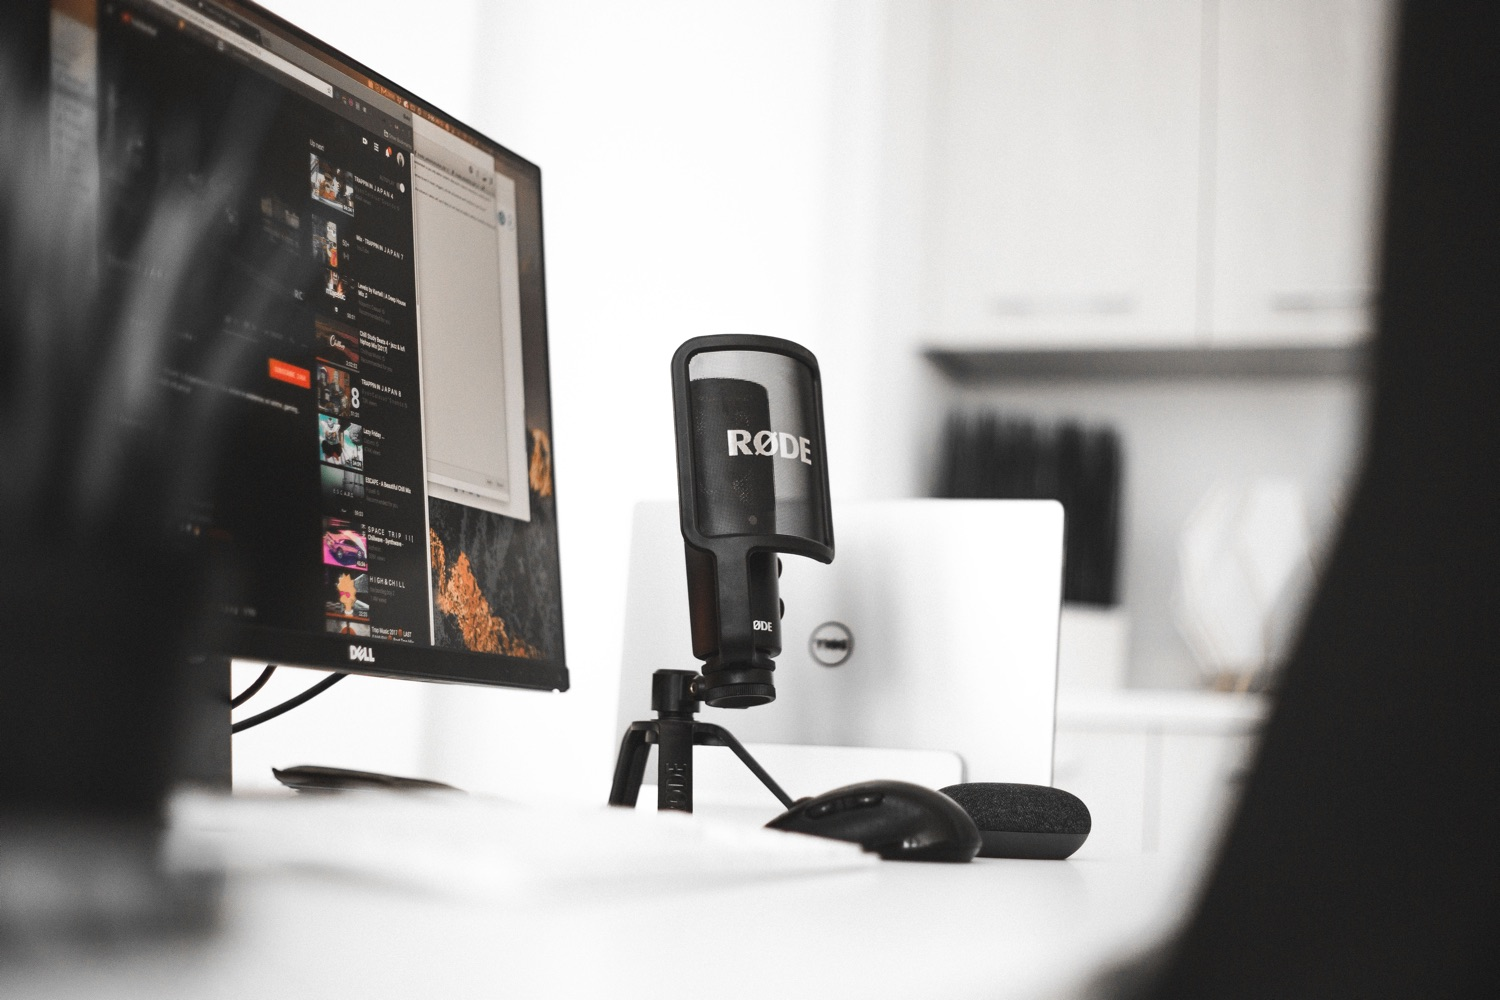 Typisches Podcaster-Studio, mit Rode-Mikro. Foto: Blake Connally/Unsplash